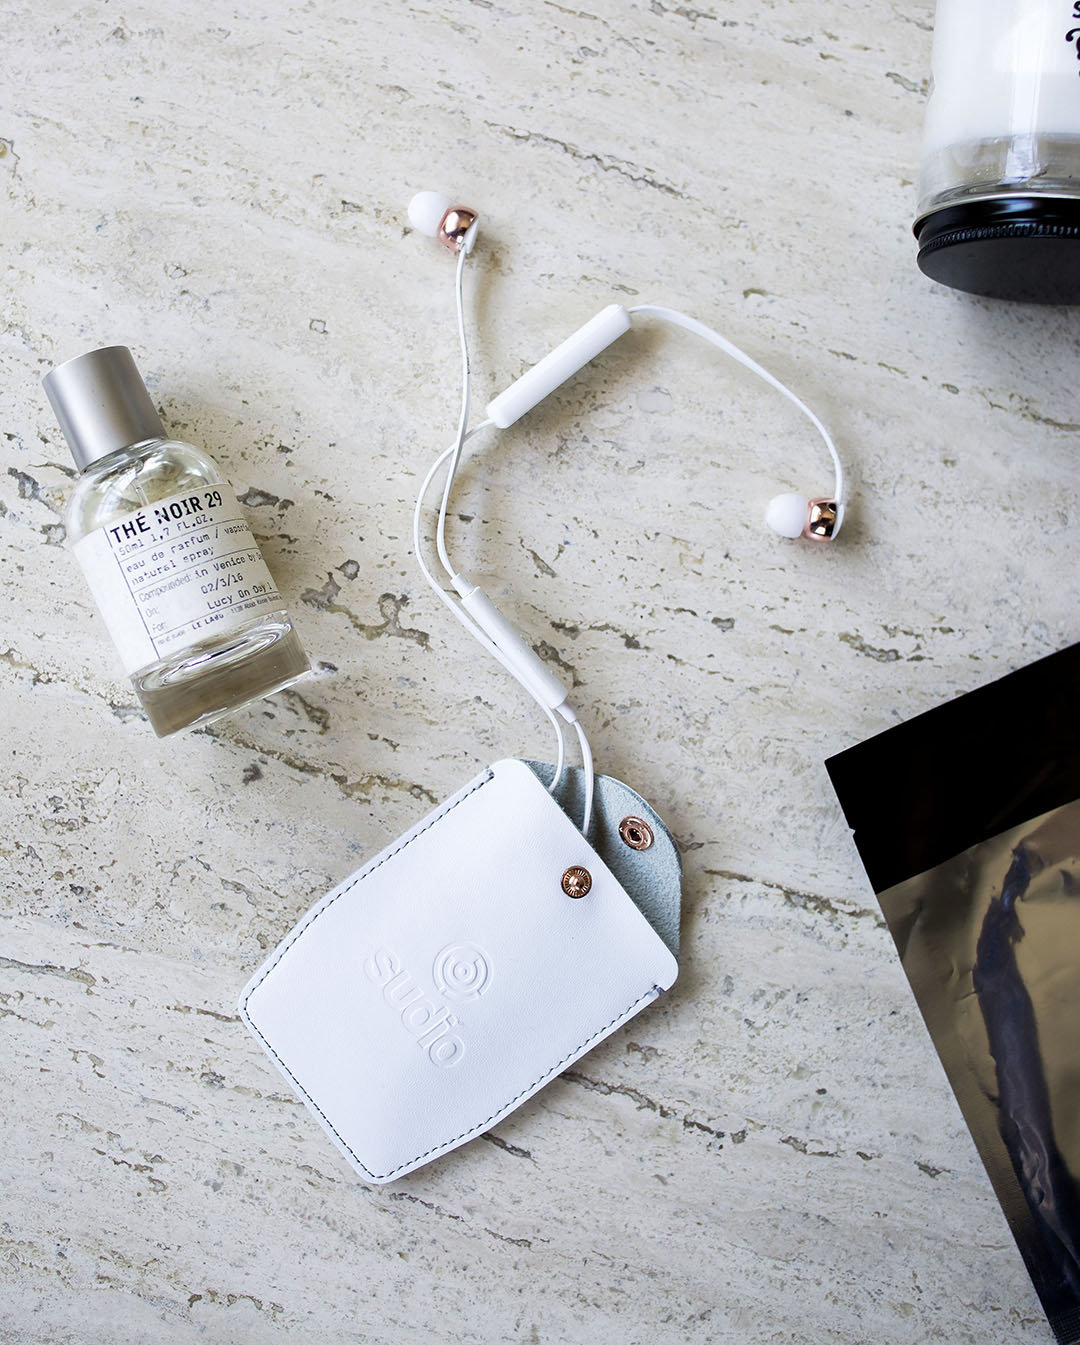 Sudio-Wireless-Headphones-Luxury-Travel-Essentials.jpg